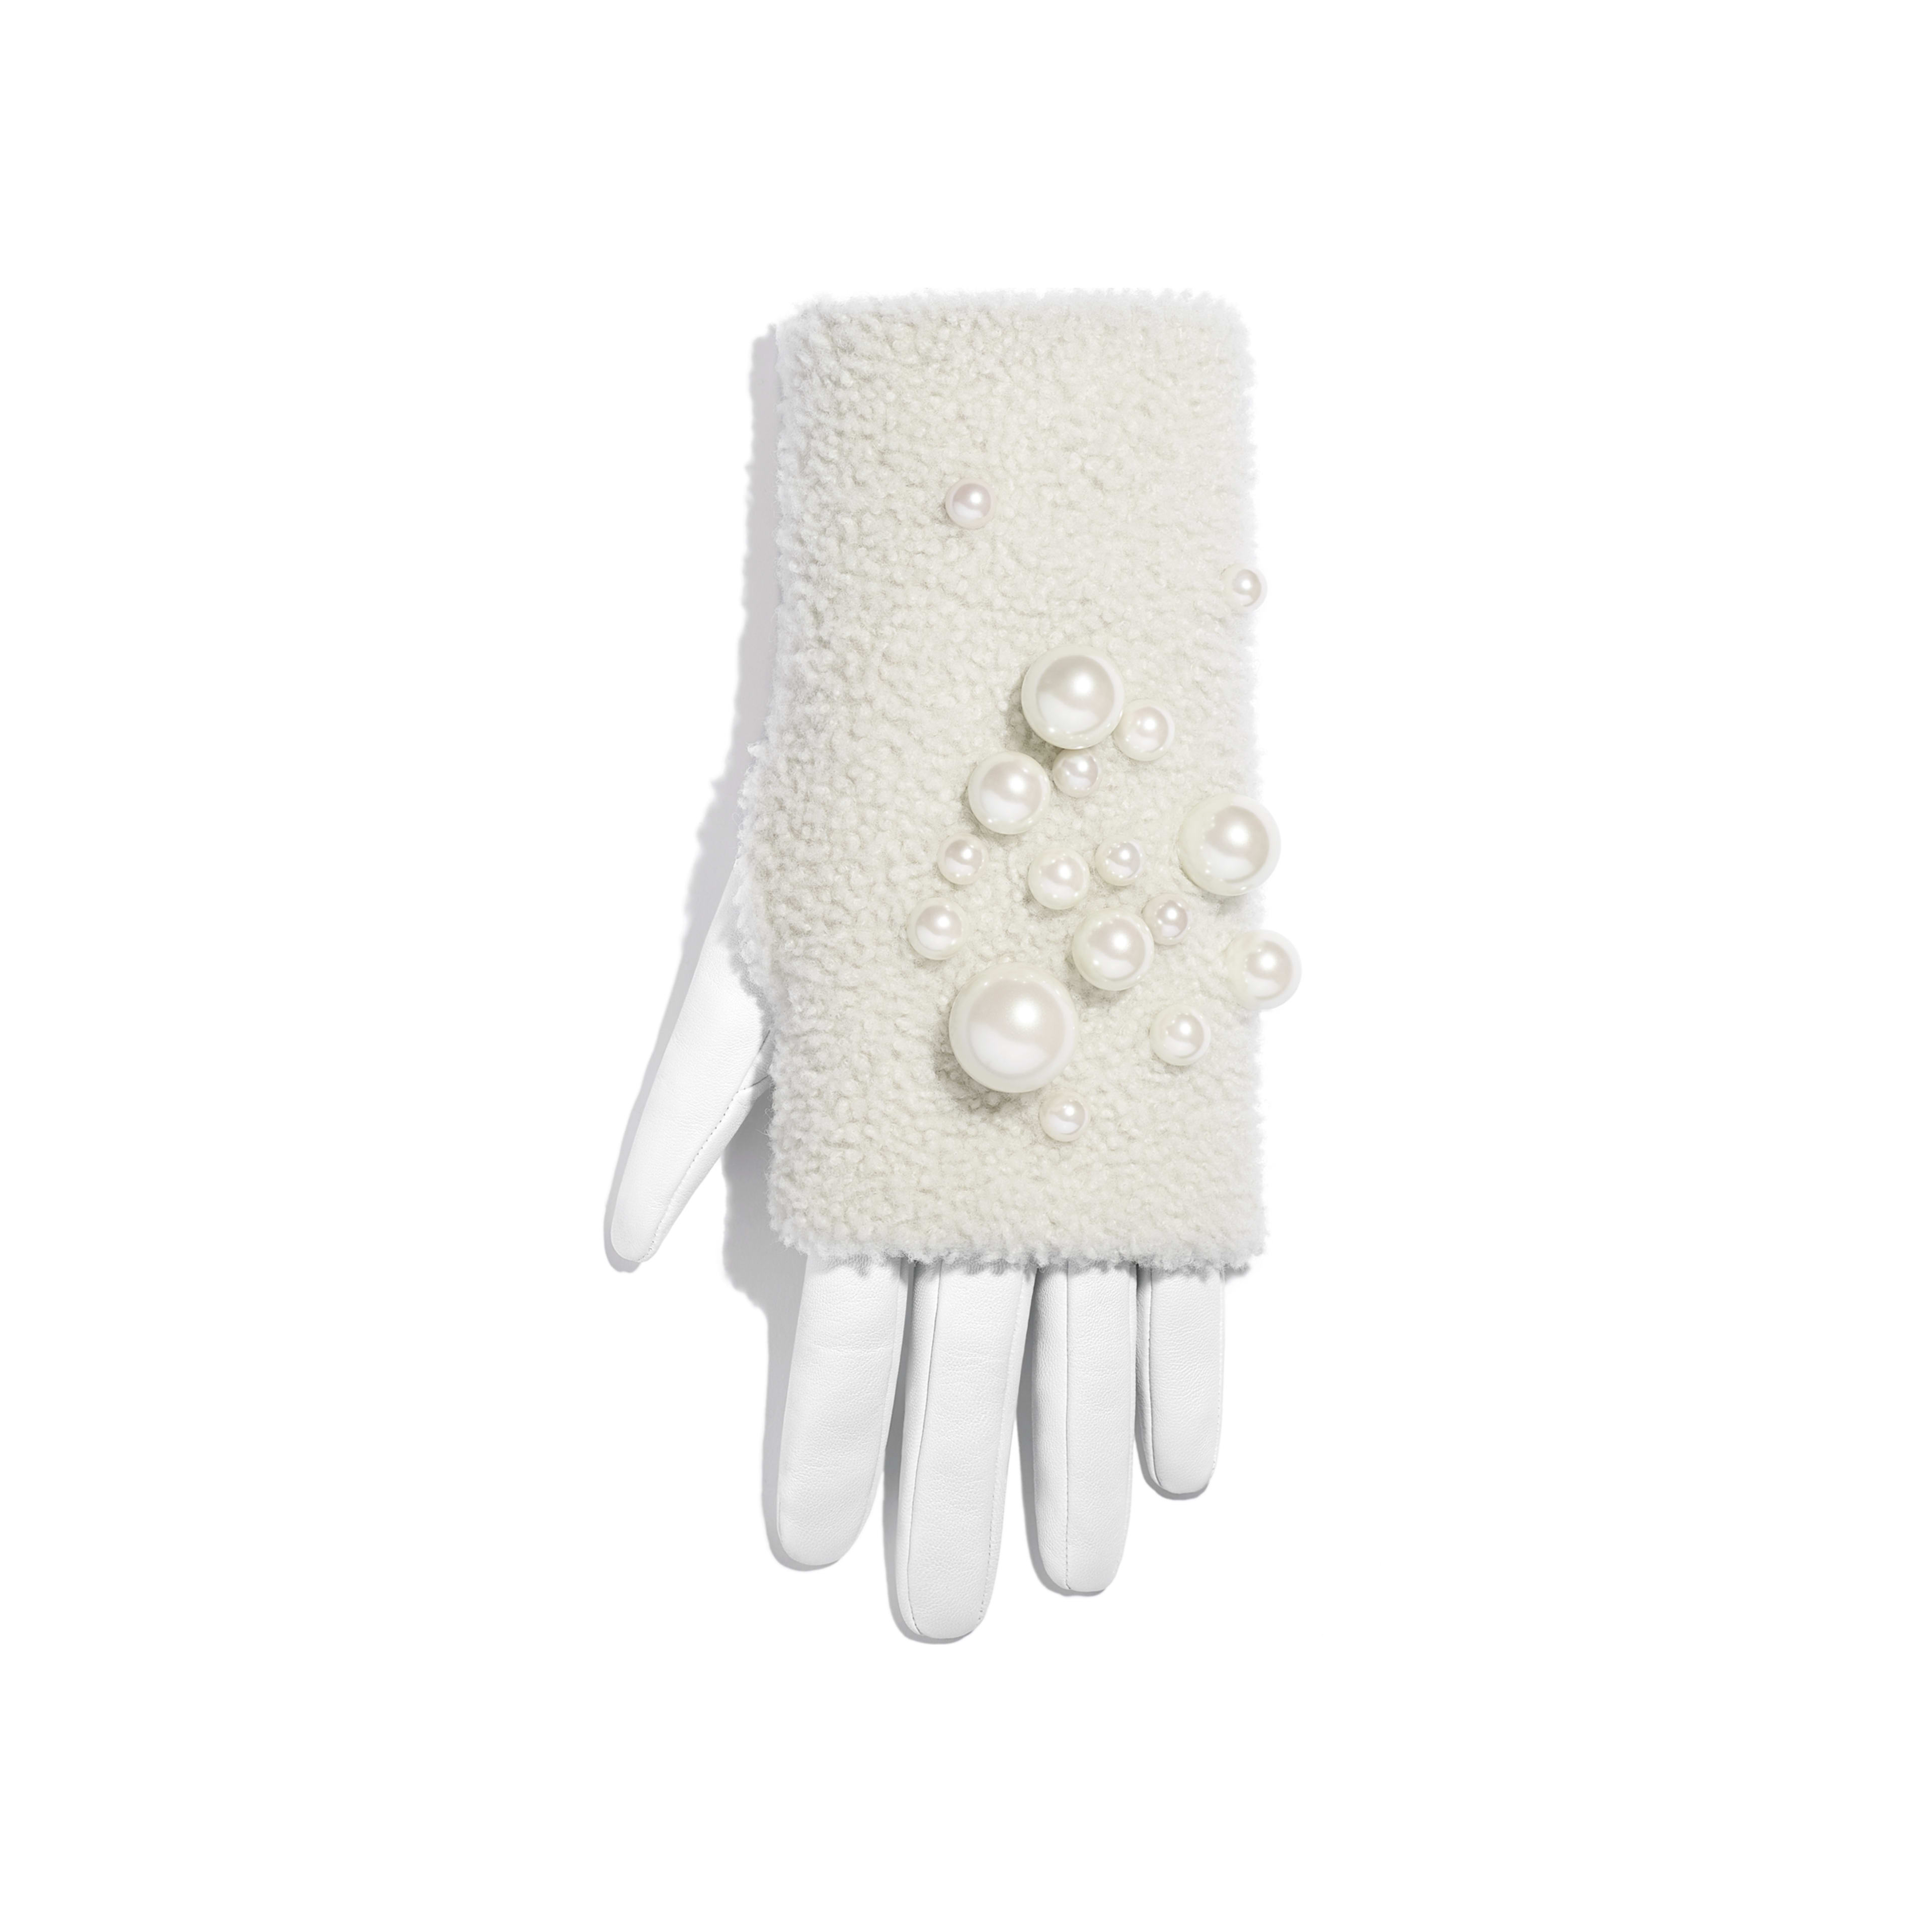 Gloves - White & Ivory - Lambskin, Shearling & Pearls - Alternative view - see full sized version